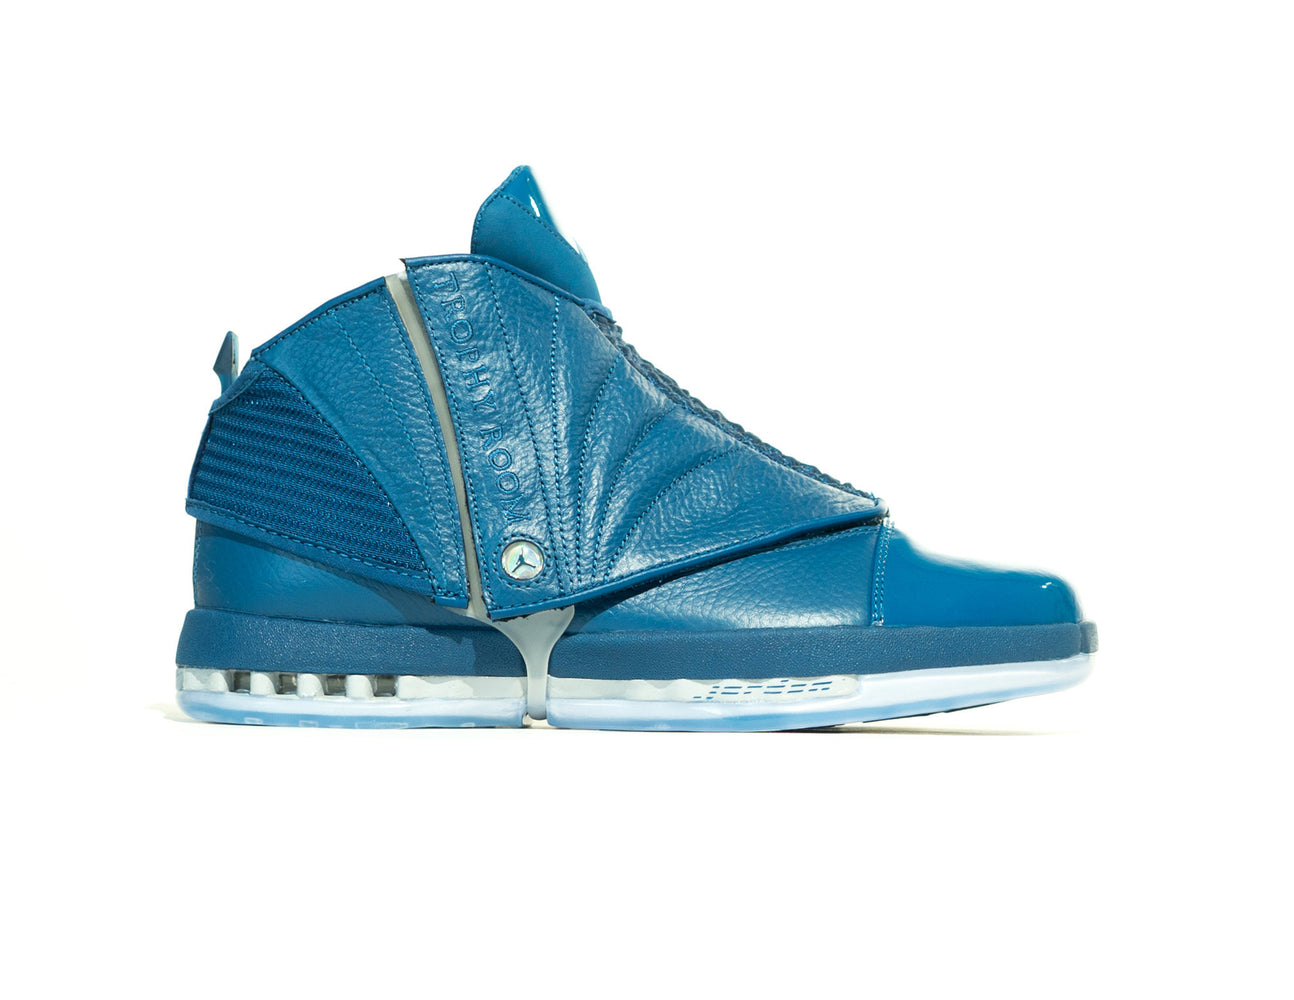 Nike Air Jordan Retro 16 Trophy Room Exclusive French Blue Size 9.5